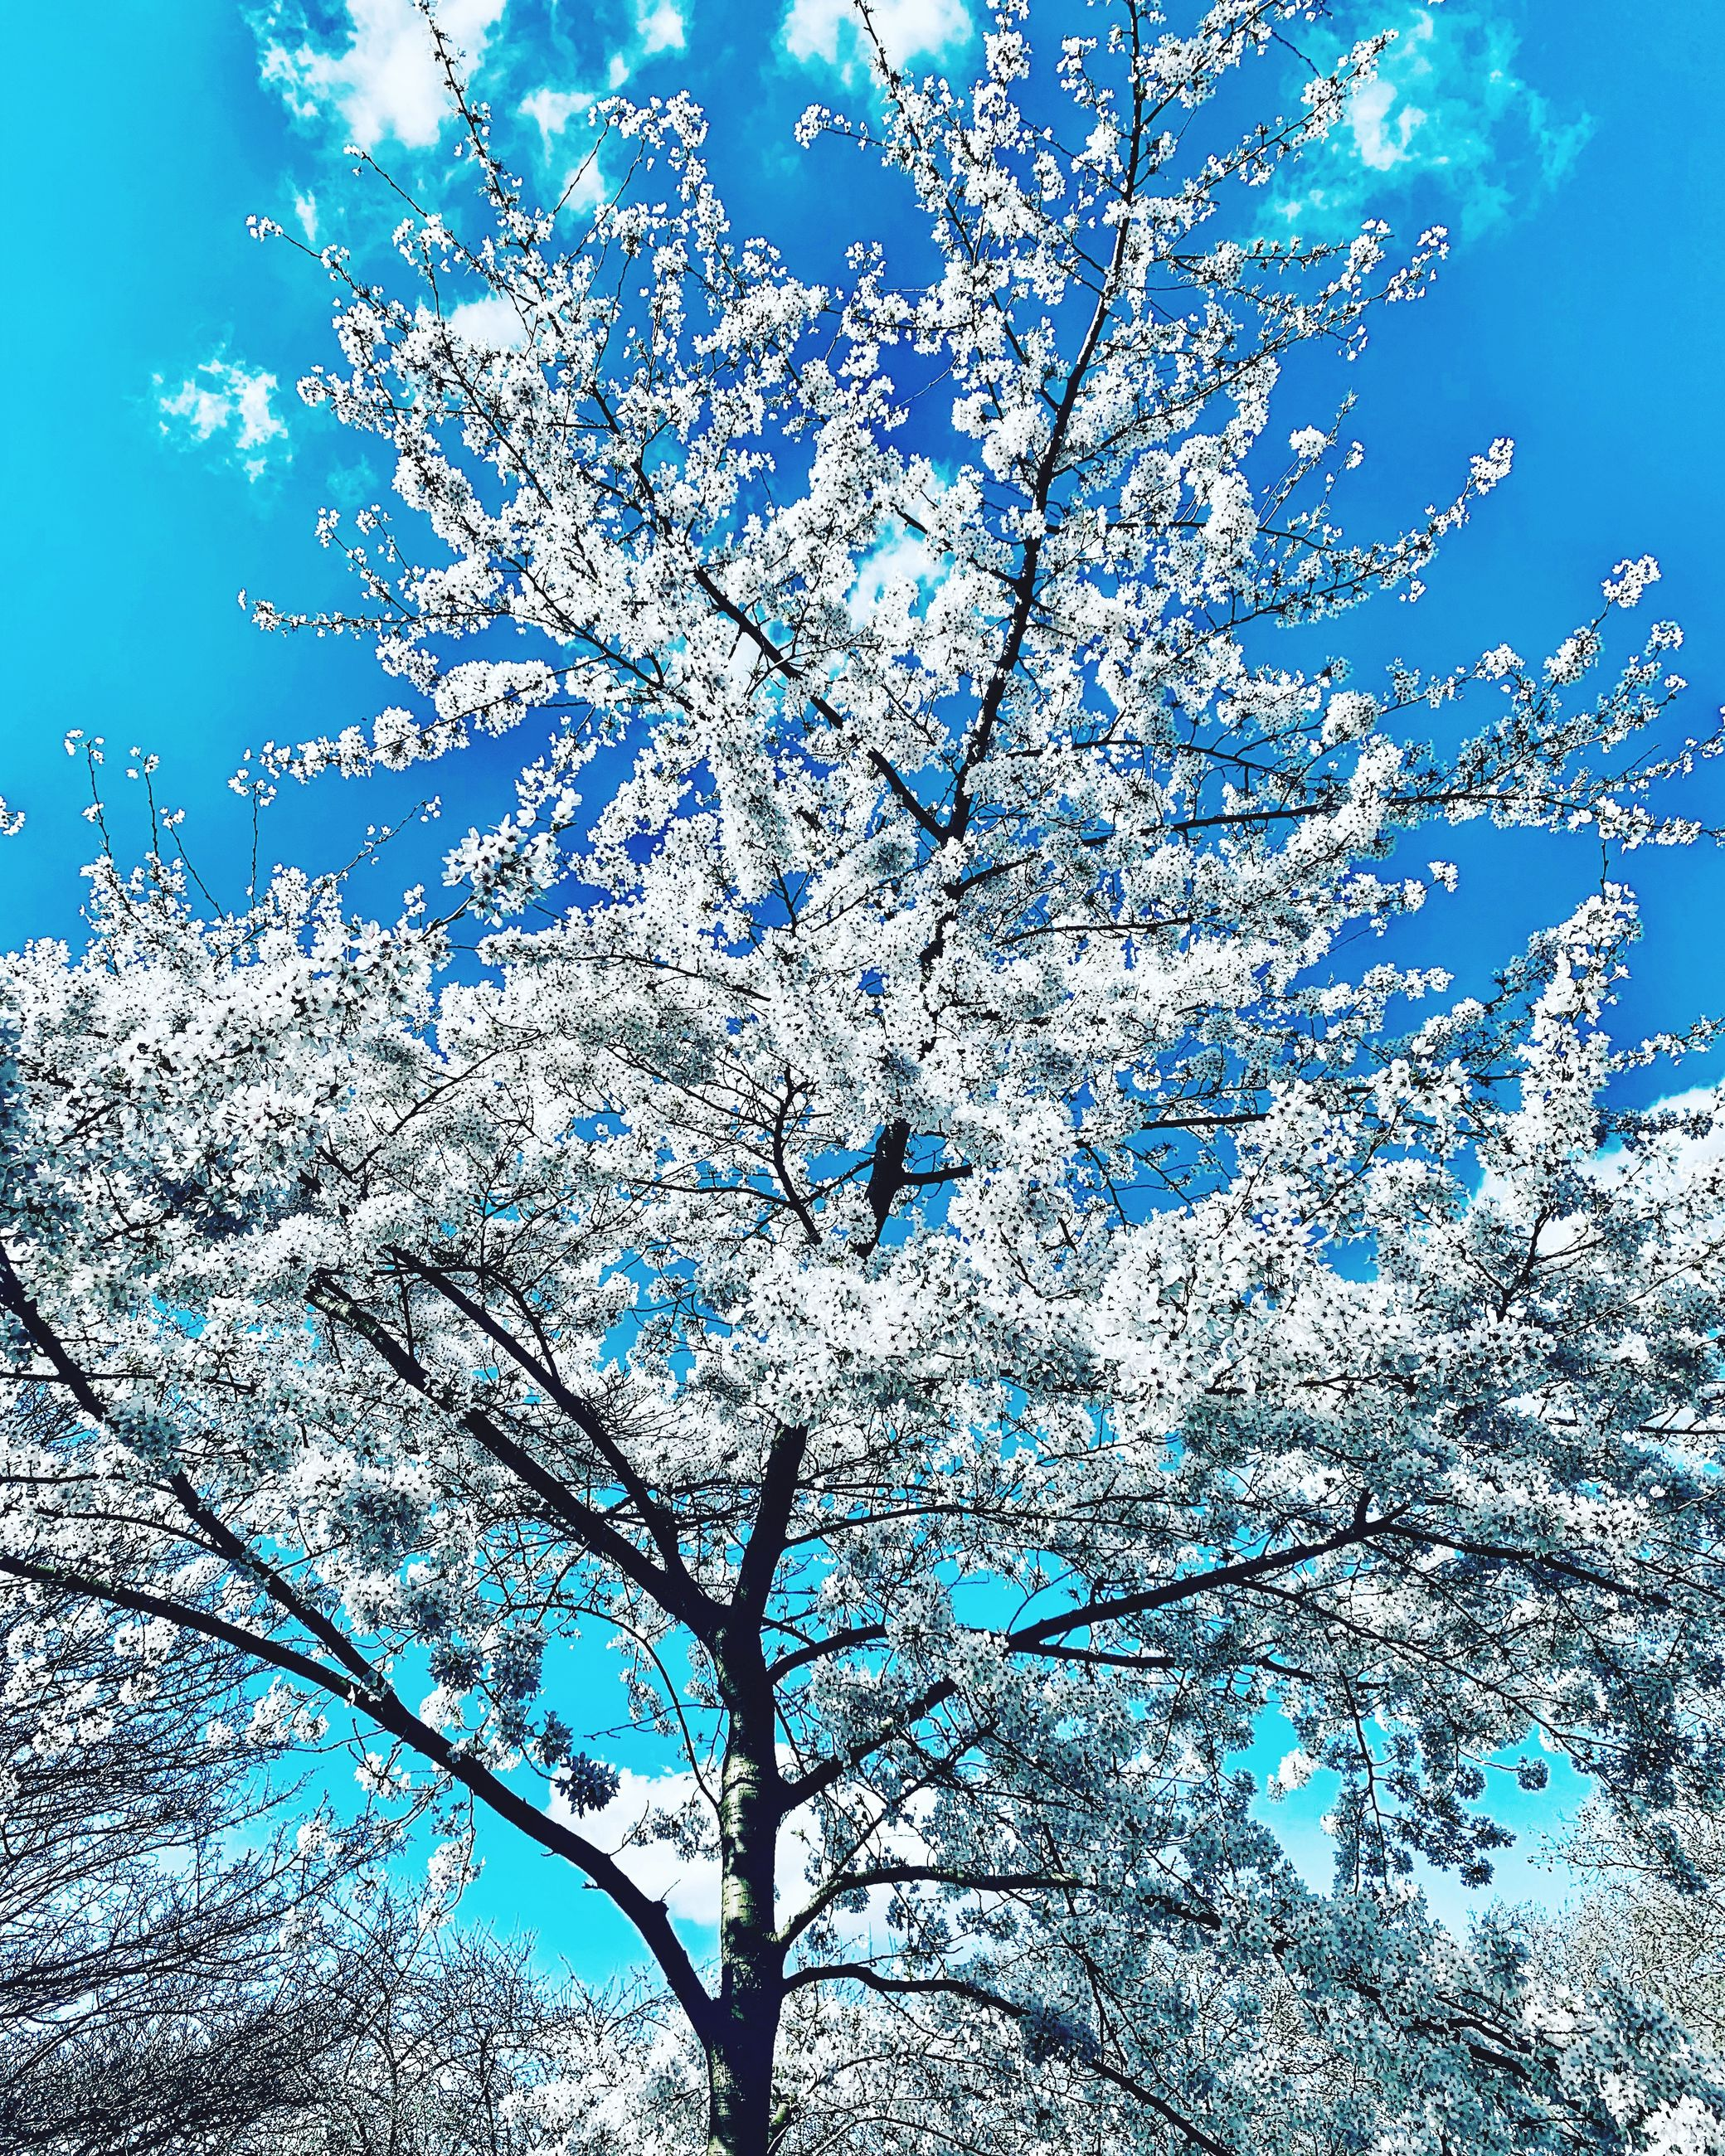 plant, beauty in nature, tree, blue, sky, nature, low angle view, branch, day, flower, no people, flowering plant, growth, outdoors, tranquility, white color, cold temperature, freshness, snow, winter, springtime, cherry blossom, cherry tree, spring